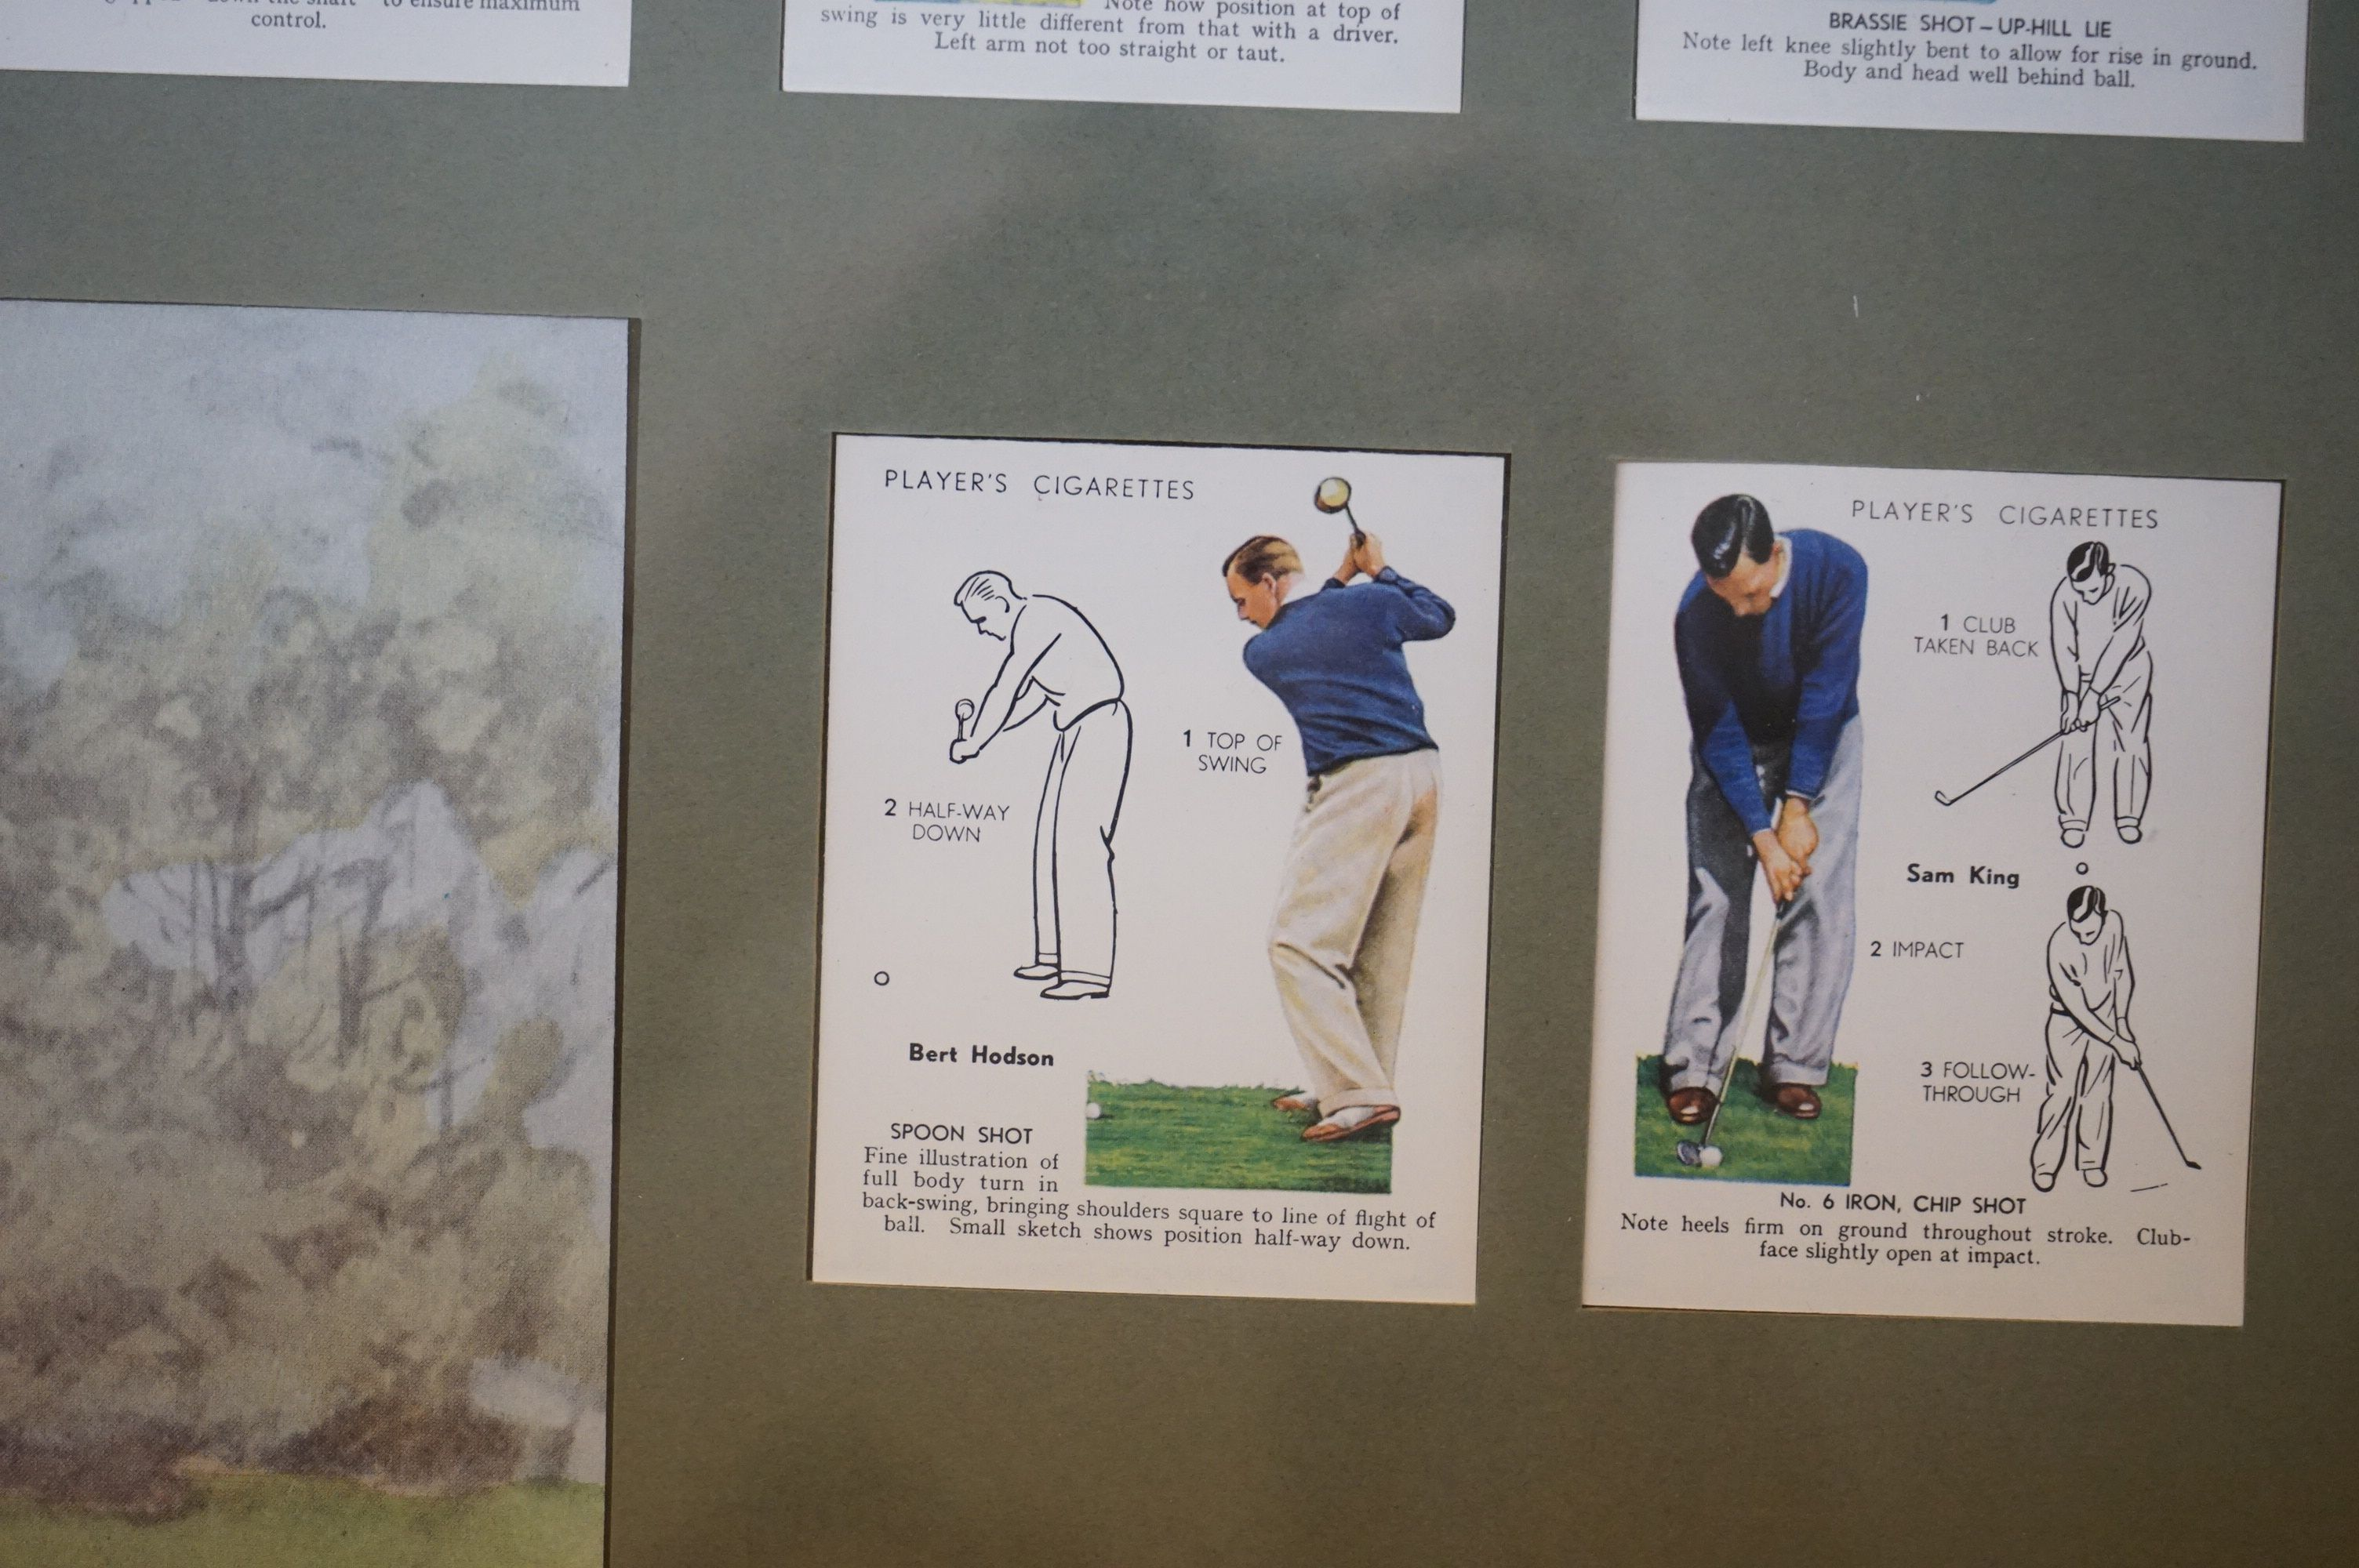 Golf - a John Player commemorative picture portraying famous golfers and their play methods - Image 5 of 6